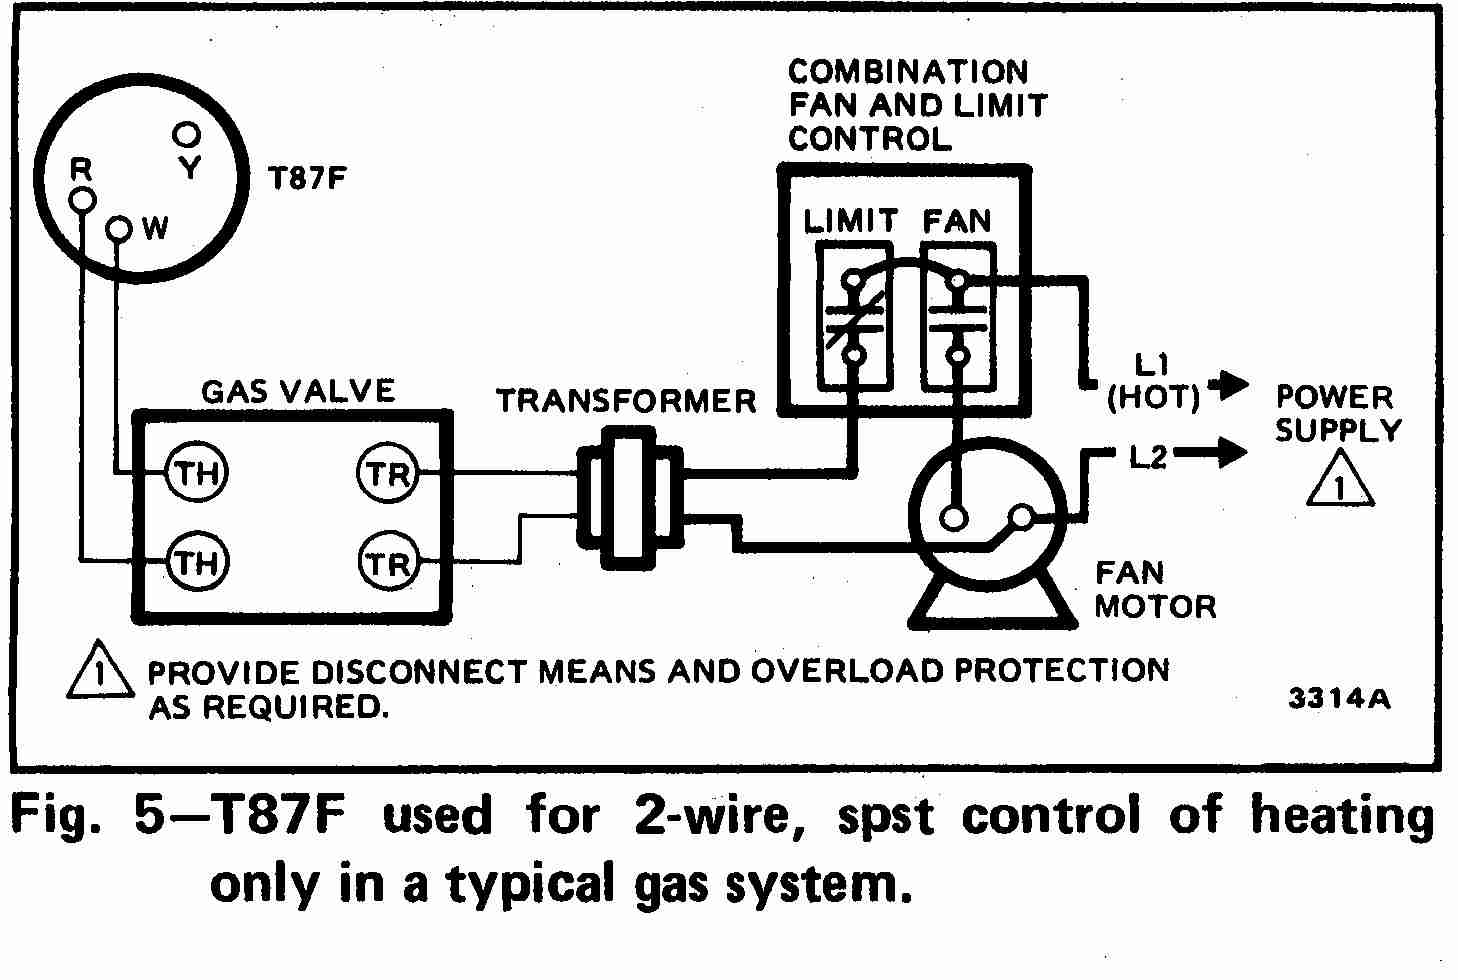 TT_T87F_0002_2Wg_DJF room thermostat wiring diagrams for hvac systems furnace wiring diagrams at bayanpartner.co